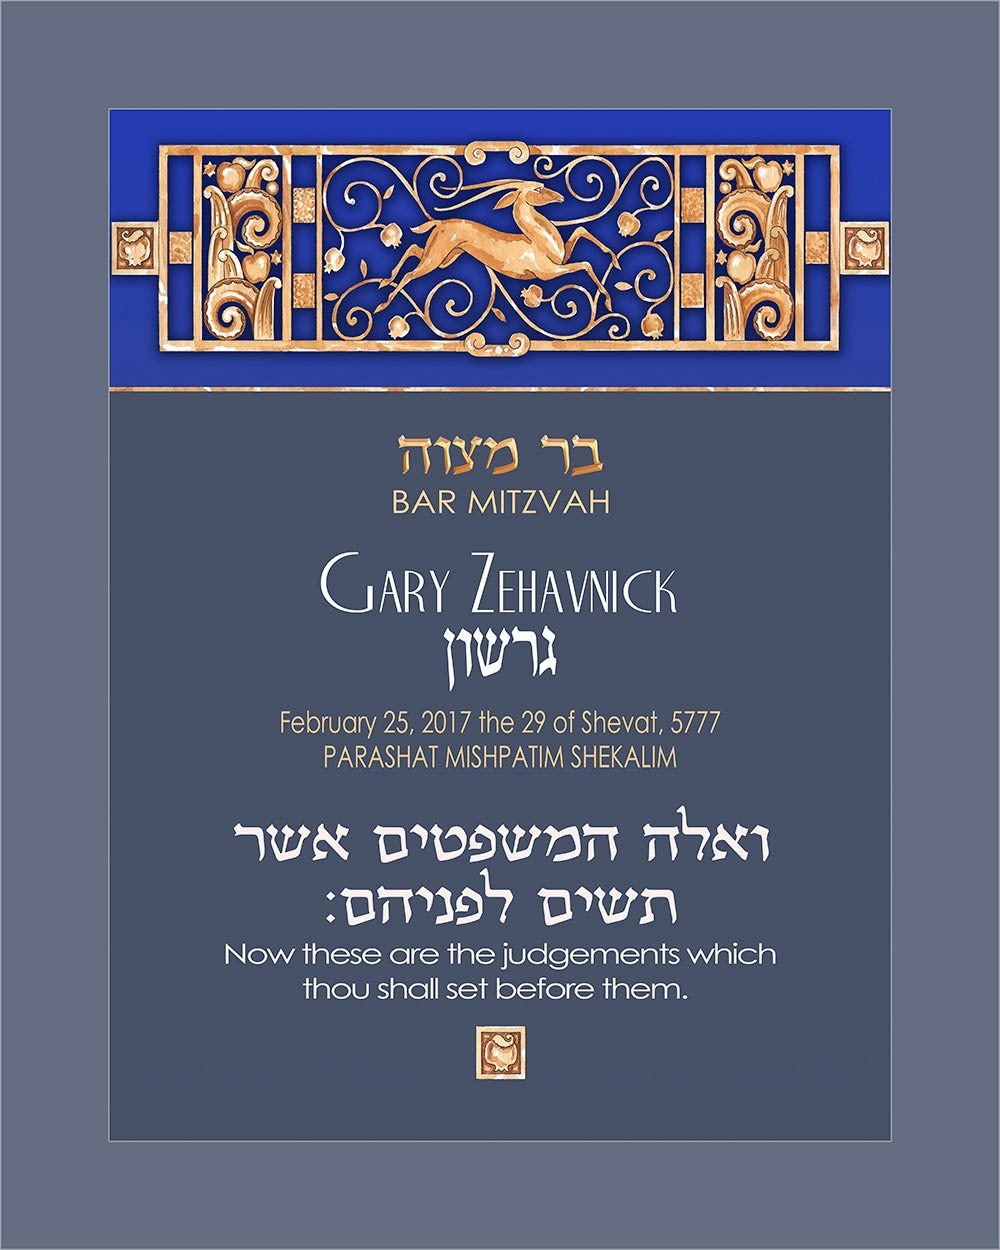 Personalized bar mitzvah gifts caspi cards art personalized bar mitzvah deer negle Choice Image